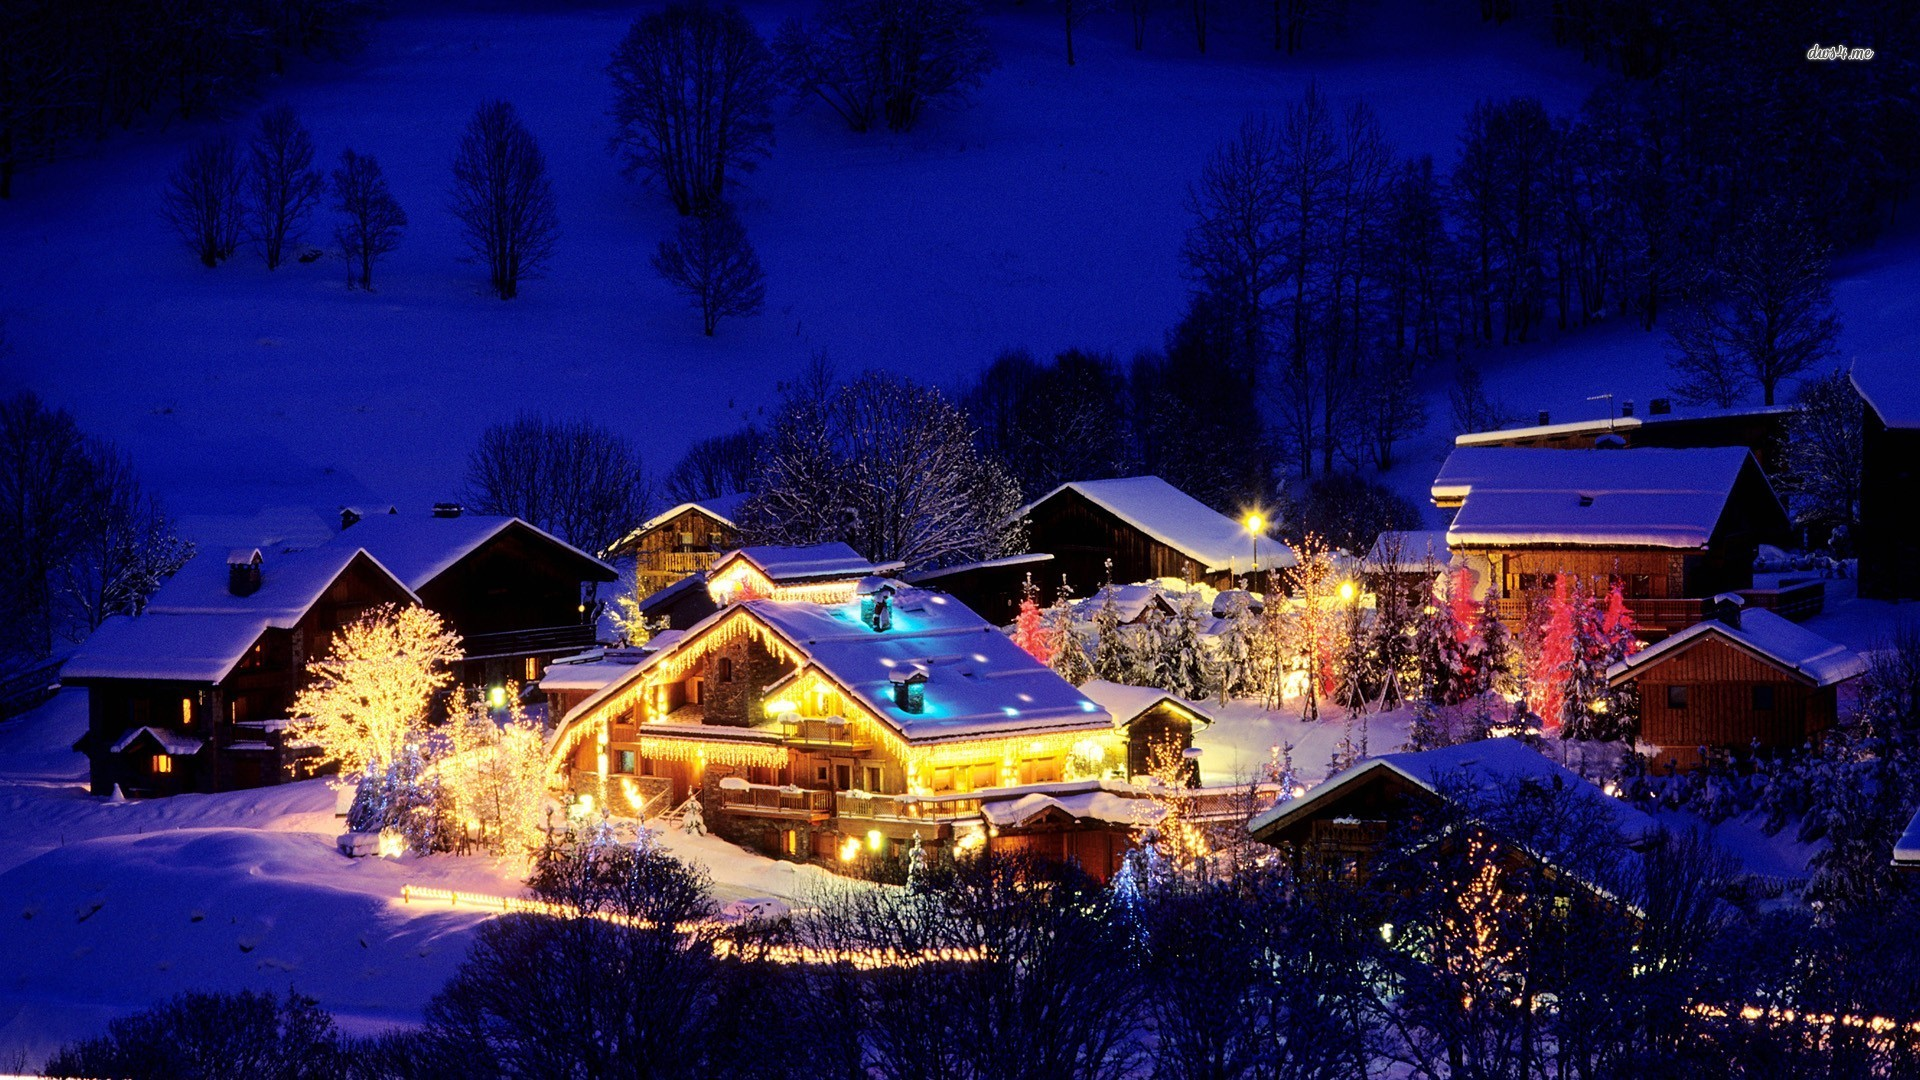 1000+ images about Christmas Village on Pinterest.